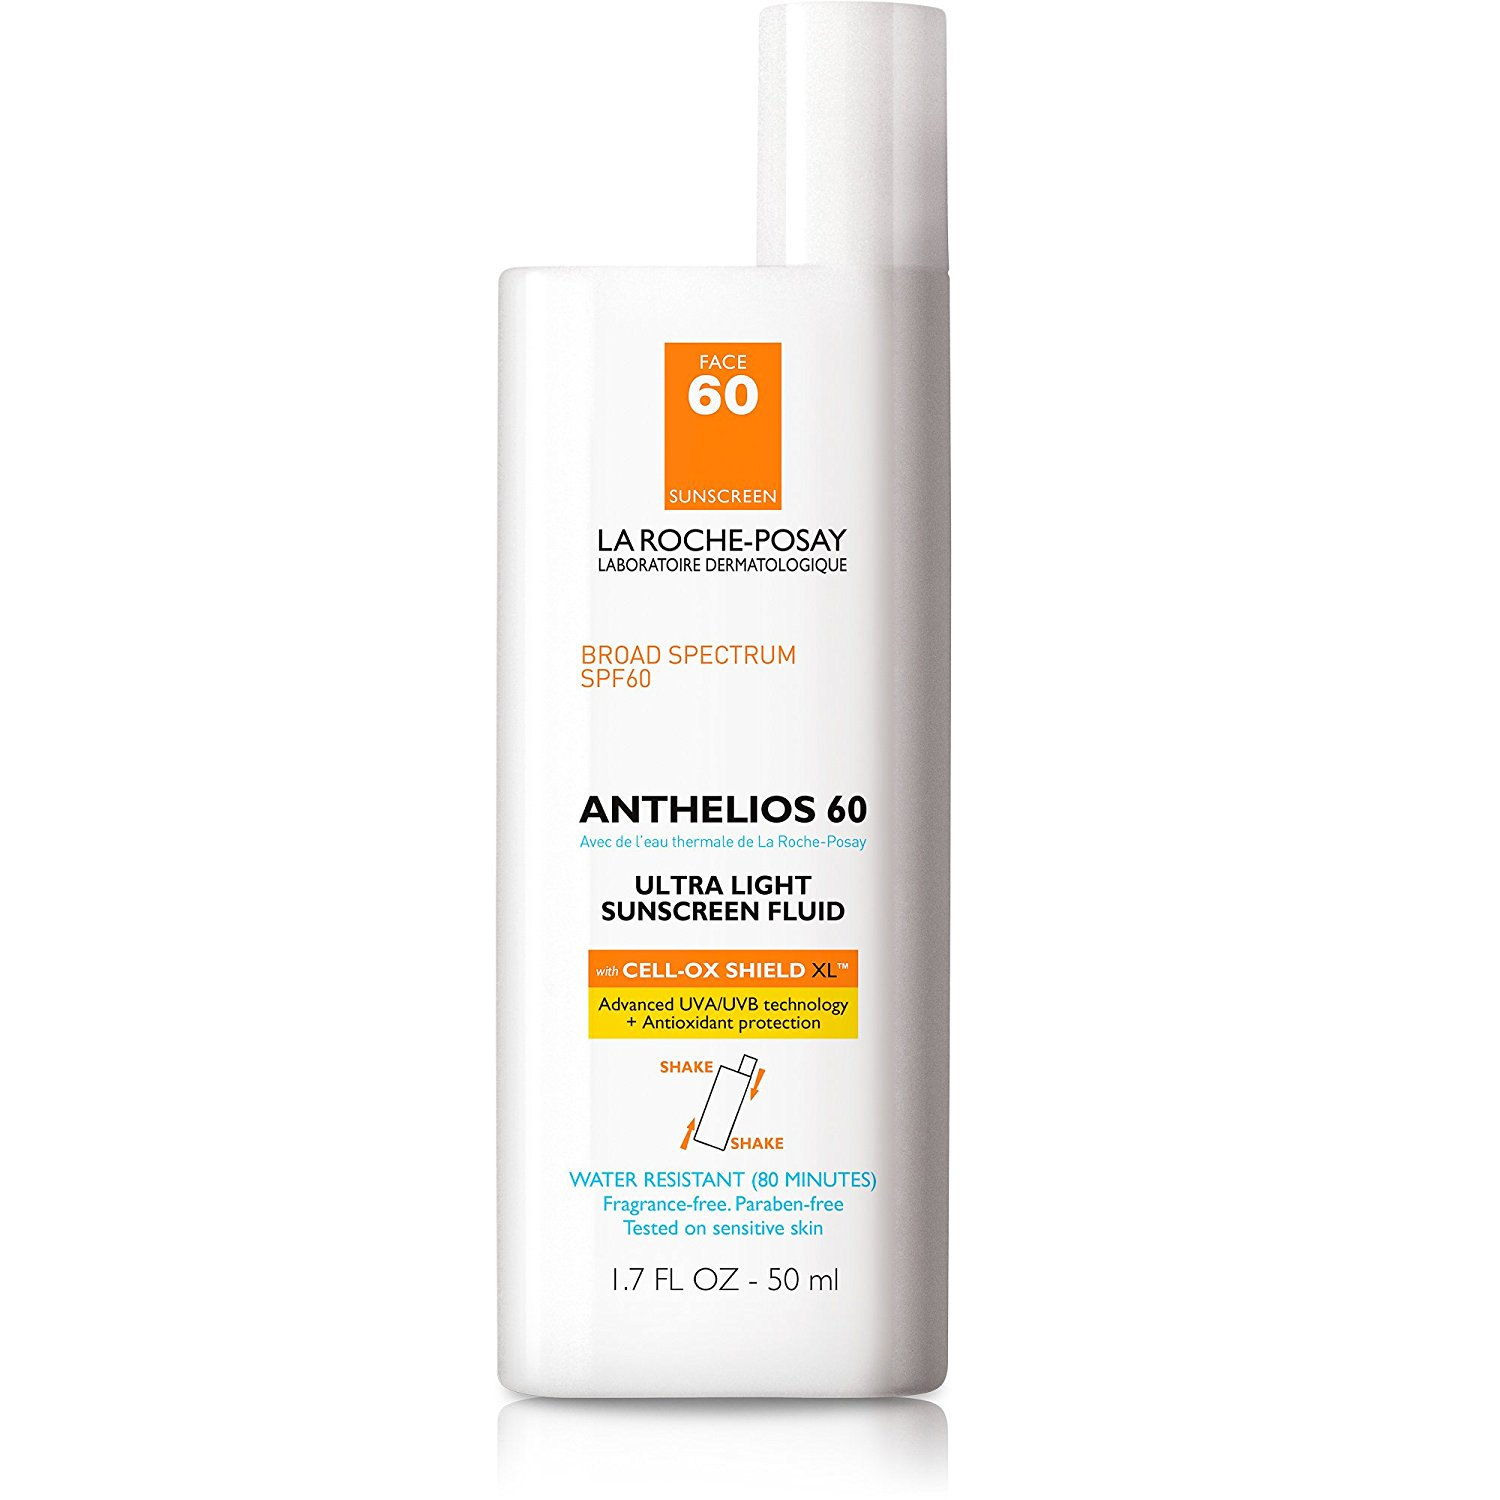 La Roche-Posay Anthelios Sunscreen Fluid SPF 60